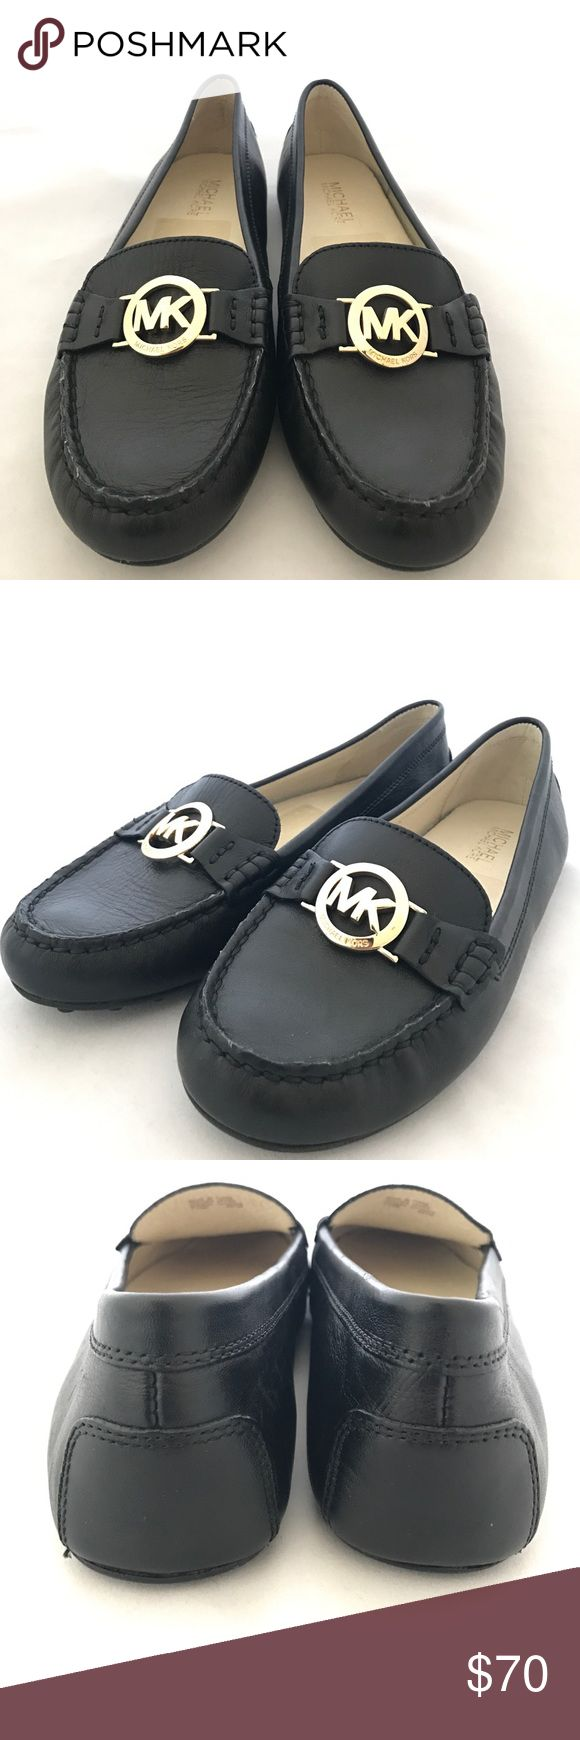 Michael Kors Black Leather Flats Sz 7.5 Michael Kors Black Leather Flats Sz 7.5  In really good condition. No signs of wear on bottom sole. Front flap of right shoe has more wrinkles on the leather. Michael Kors Shoes Flats & Loafers